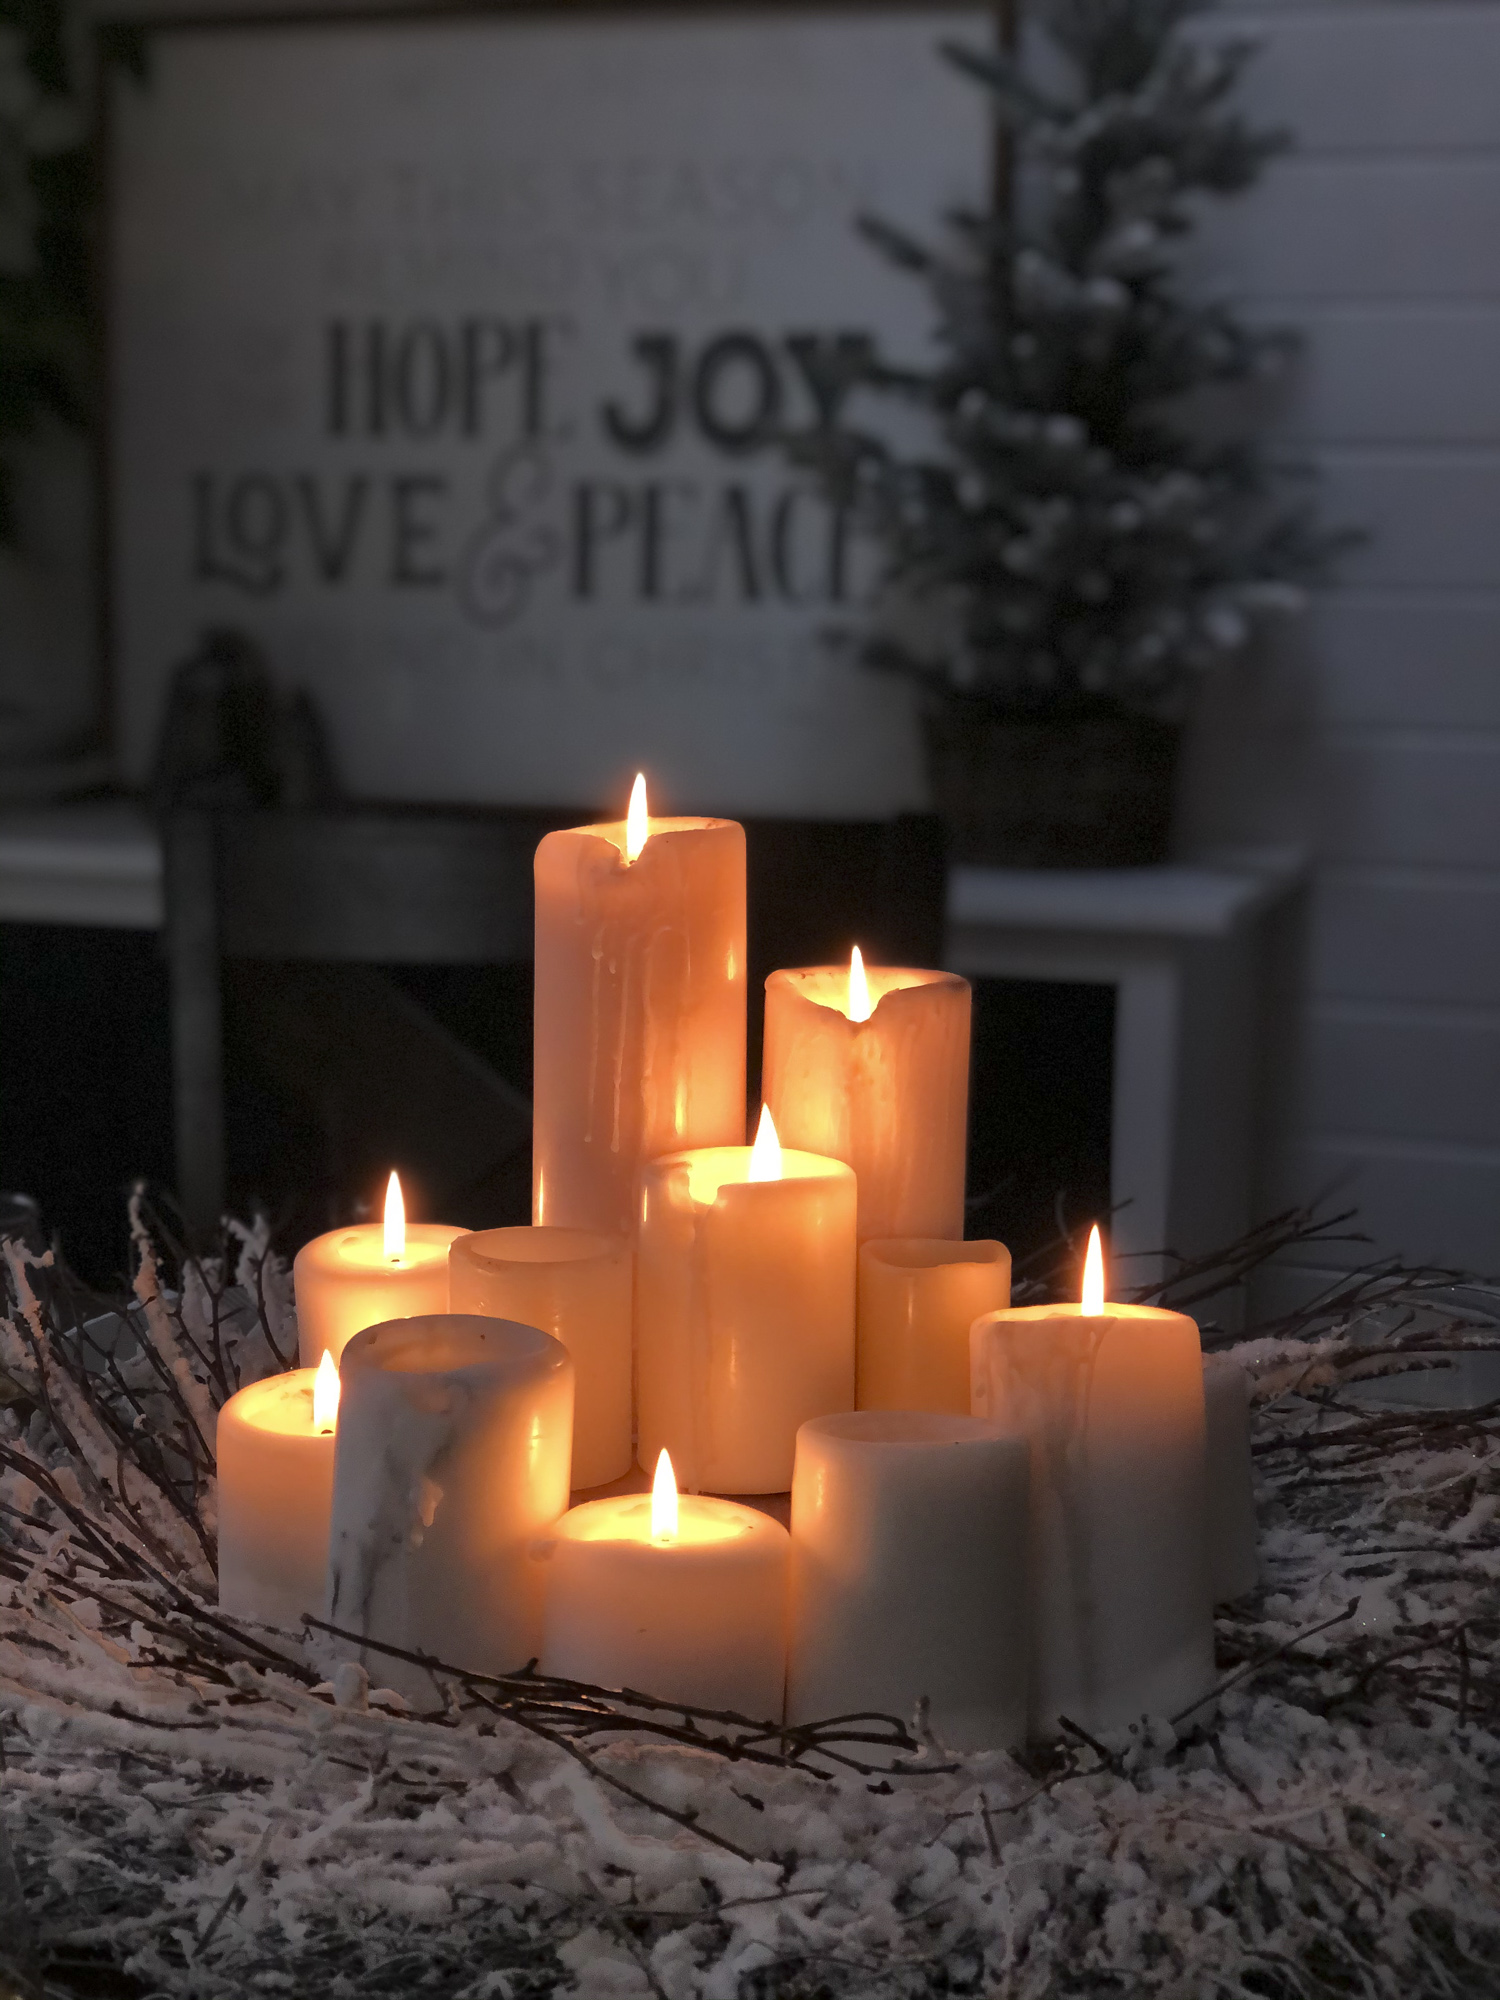 Candles burning for a cozy atmosphere.